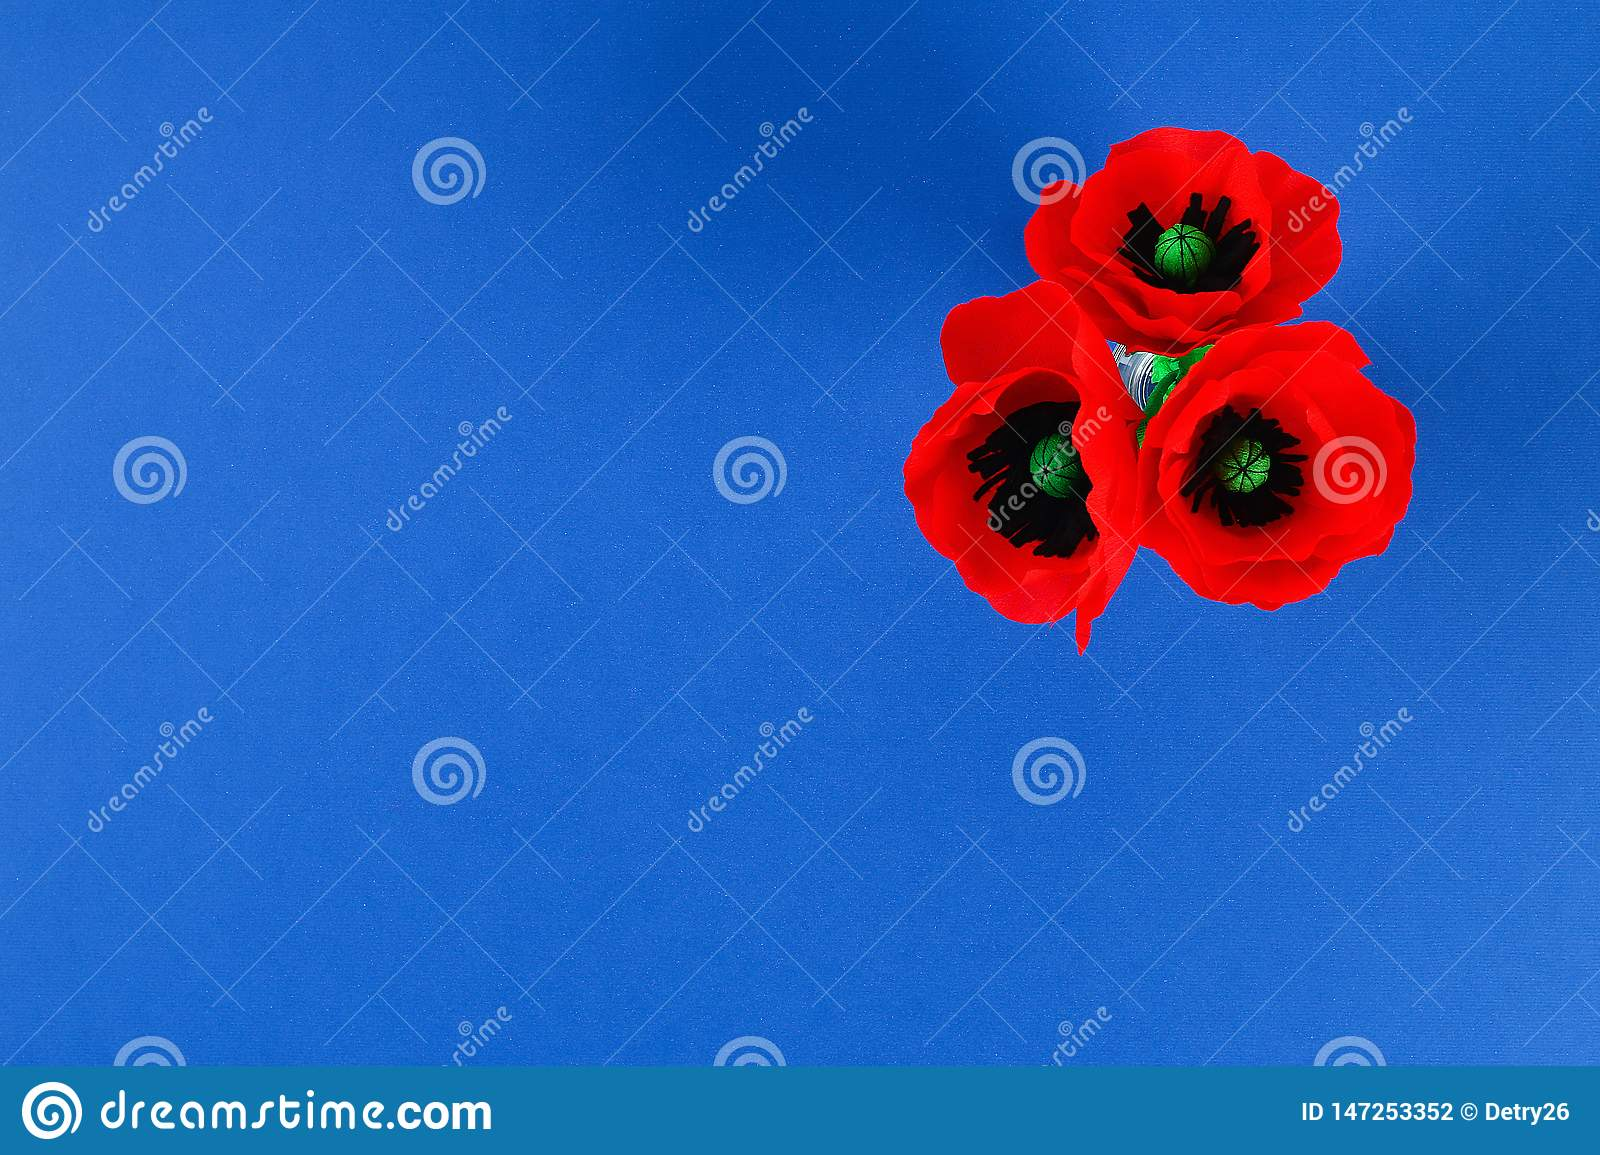 Diy paper red poppy Anzac Day, Remembrance, Remember, Memorial day crepe paper on blue background